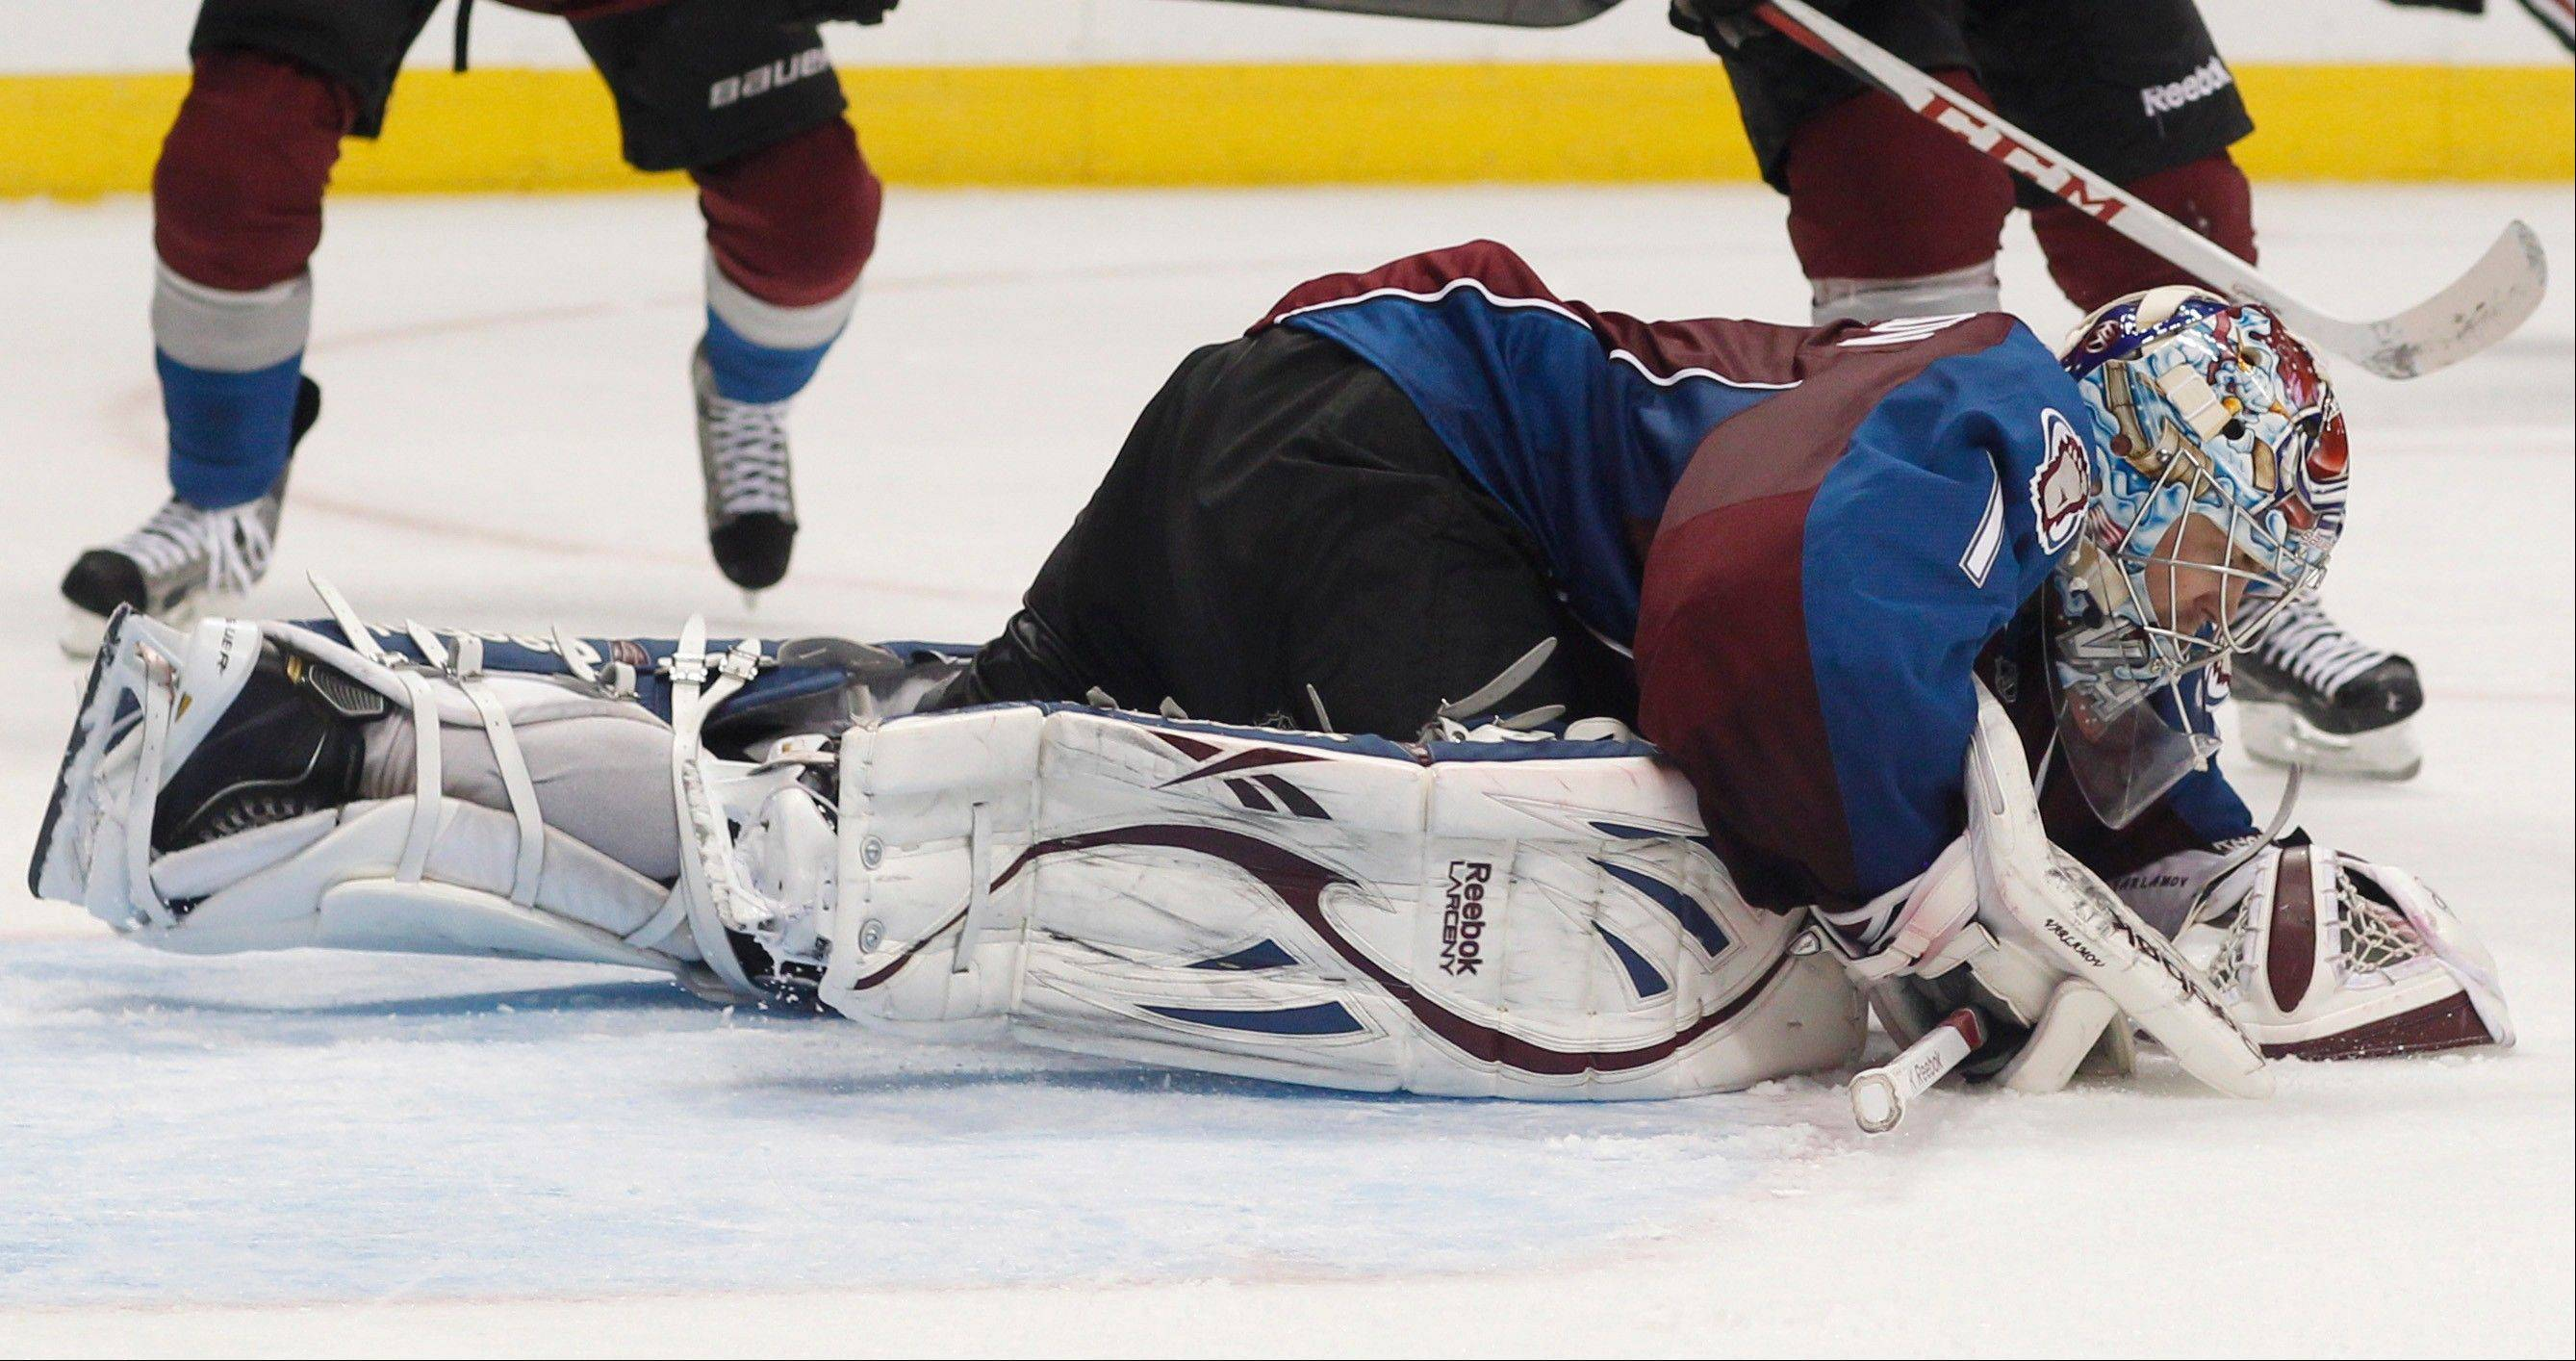 Colorado Avalanche goalie Semyon Varlamov, of Russia, drops on the ice to cover the puck after stopping a shot from the Chicago Blackhawks in the second period.